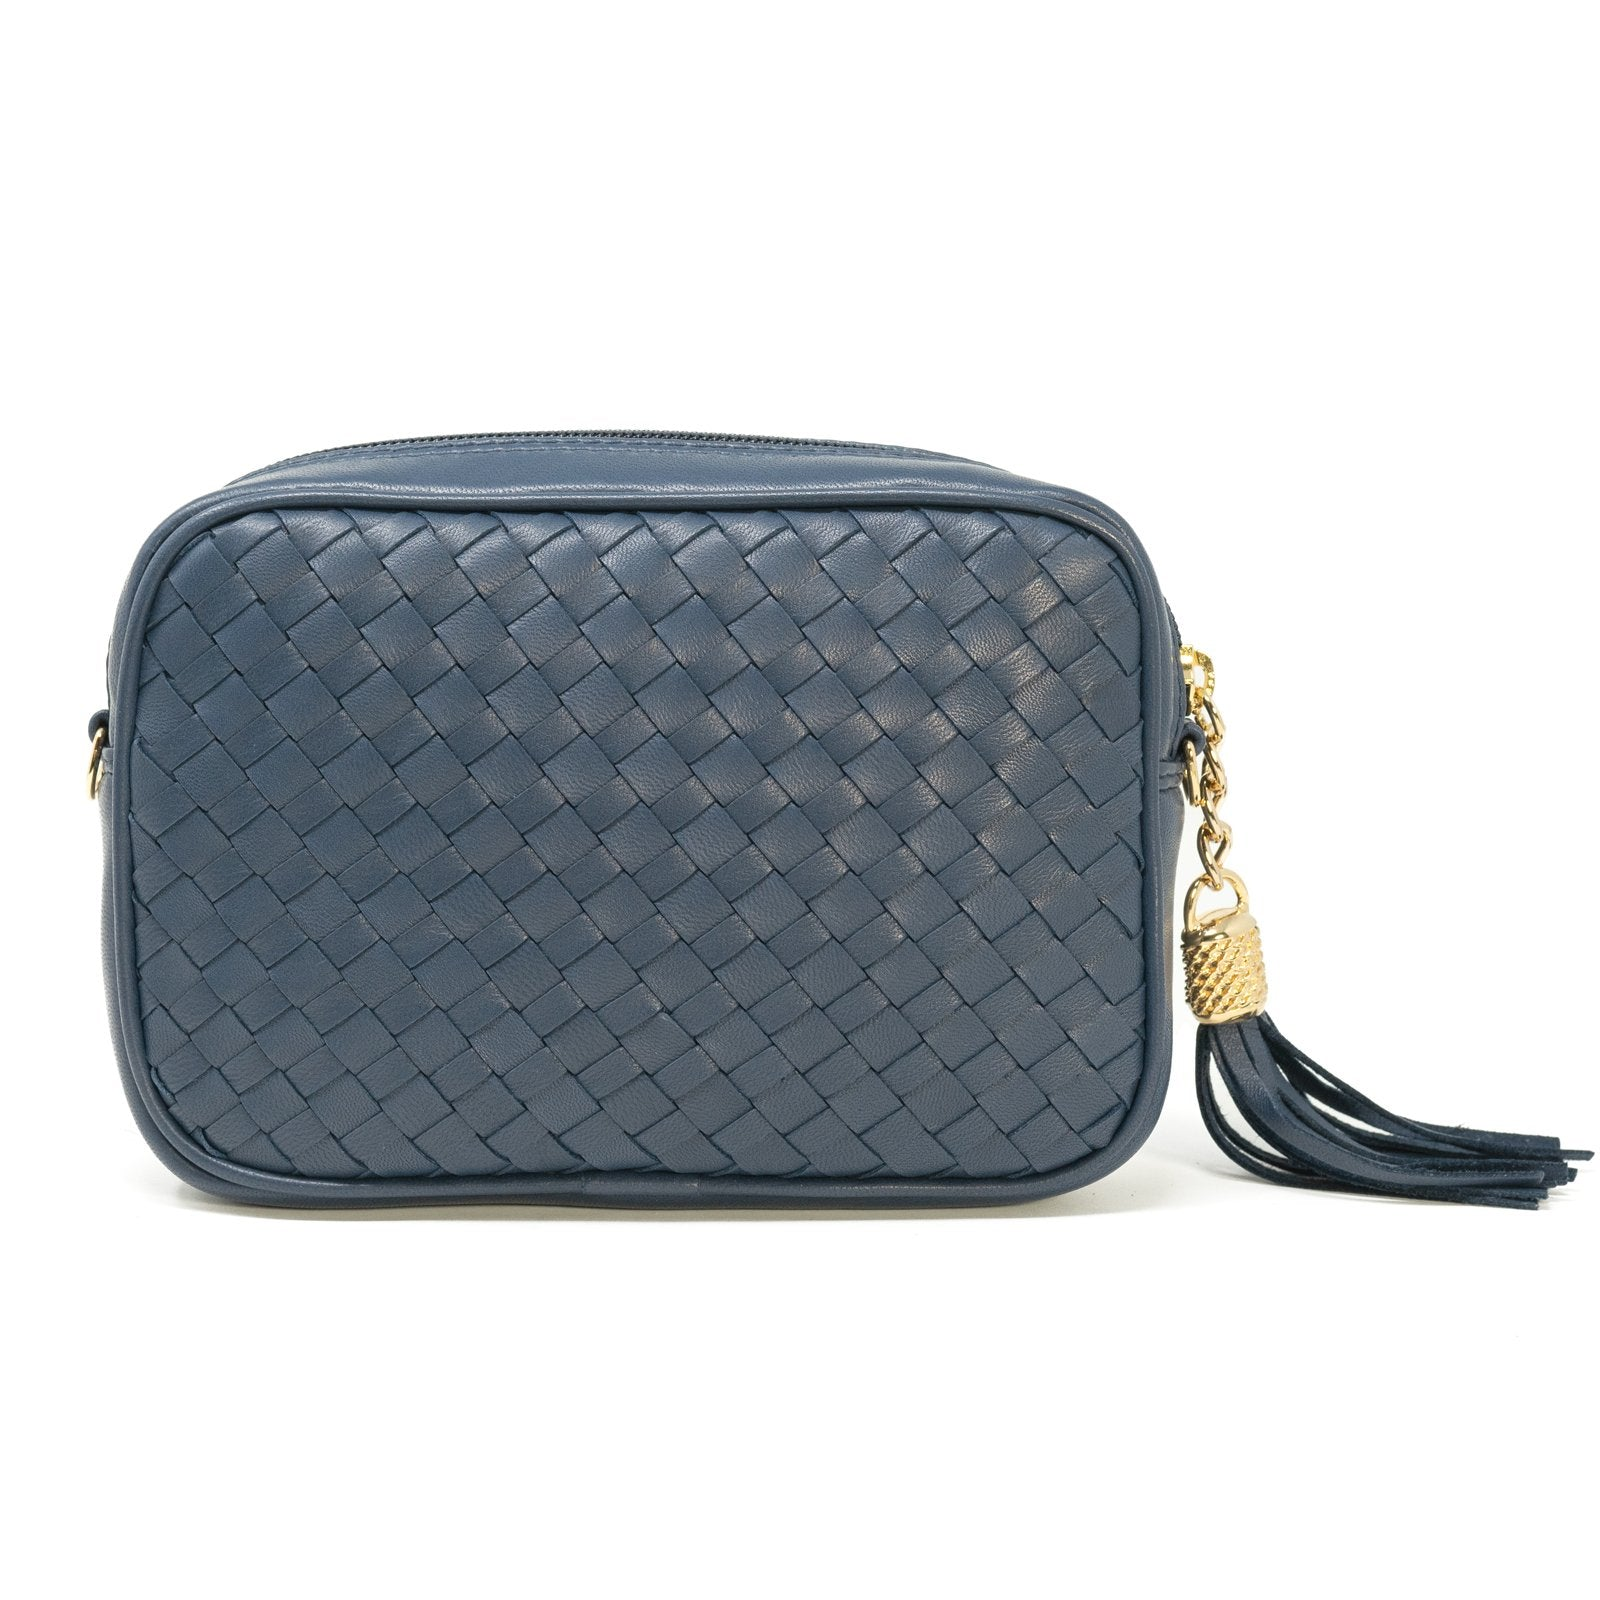 Women Intrecciato Leather Soft Zippered Clutch with Shoulder Chain LUC1521 Blue Intreccio Quadro - Jennifer Tattanelli